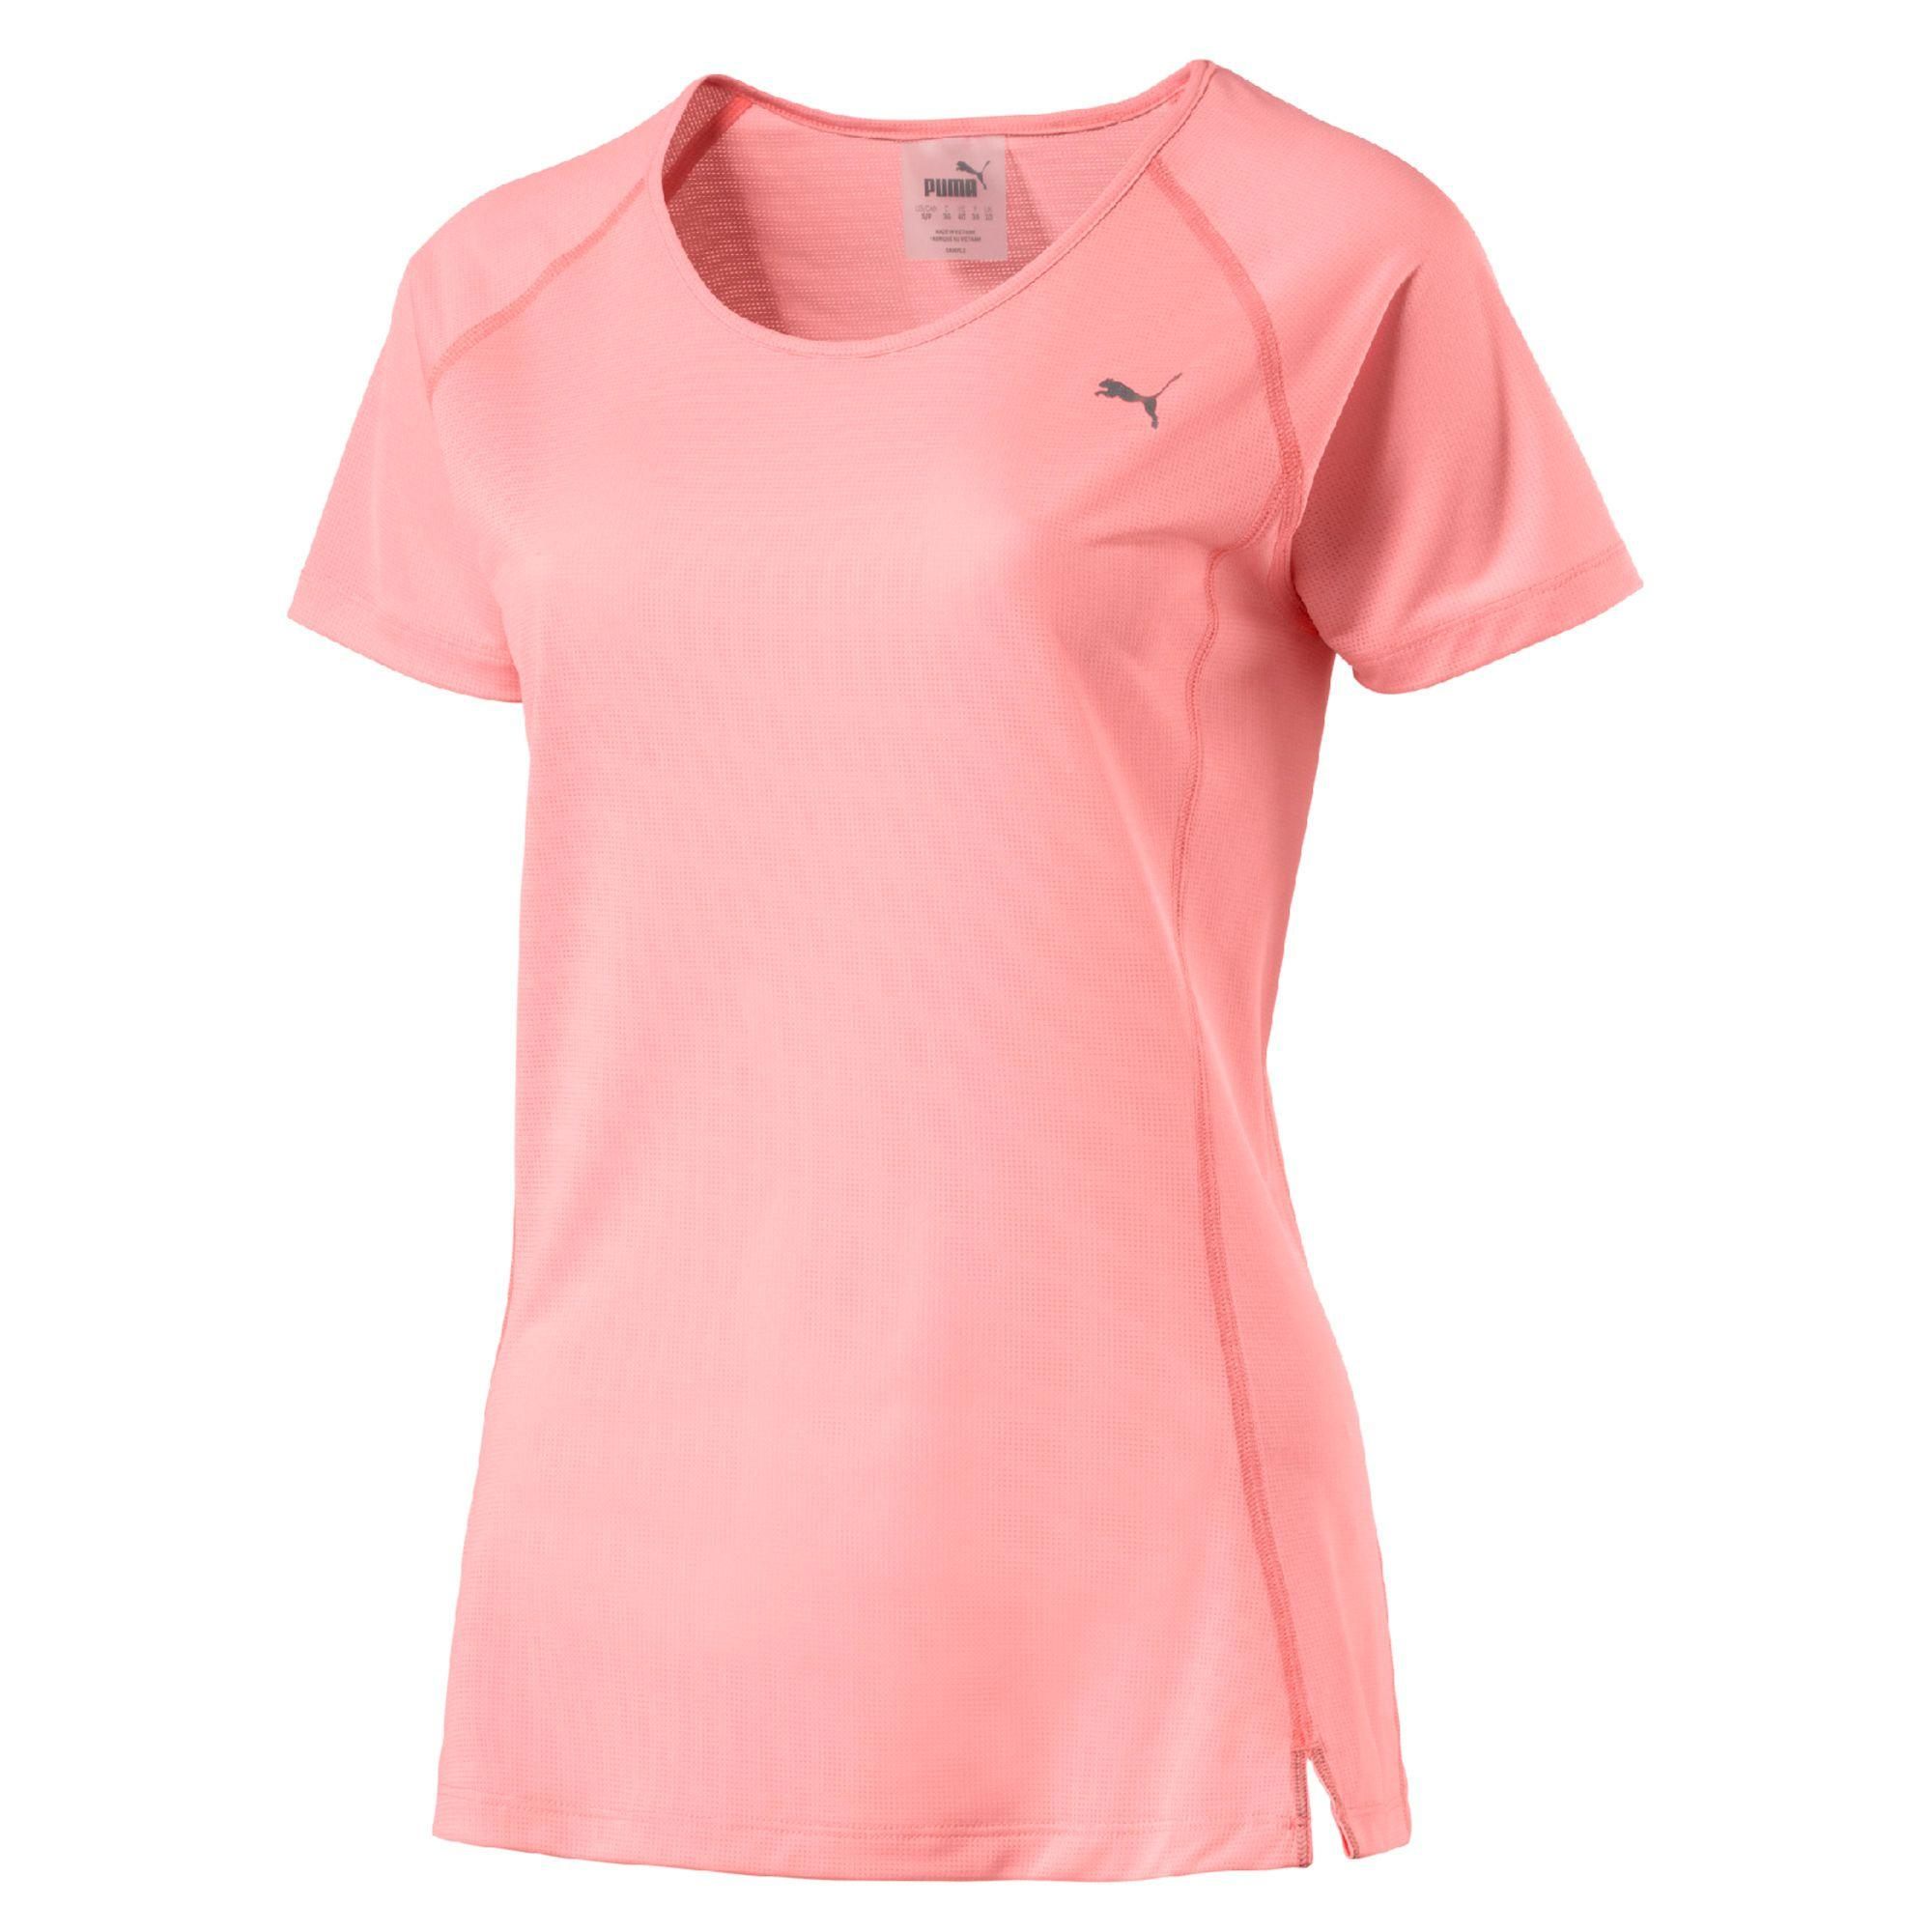 Puma T-shirt Core-run S/s  Donna